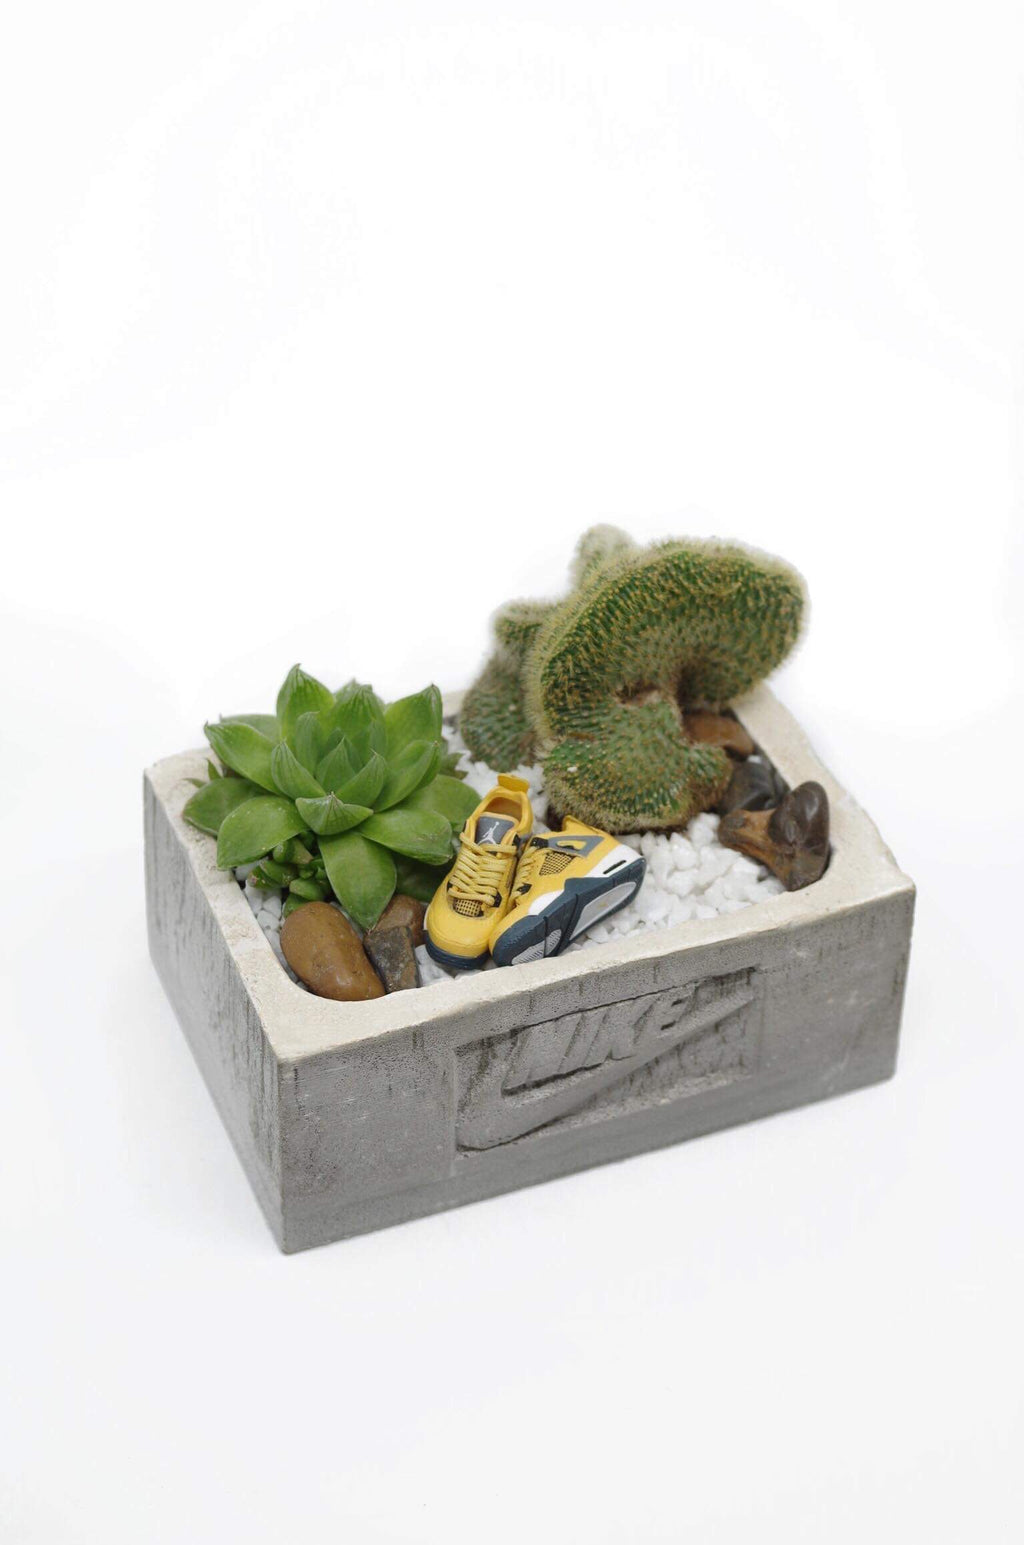 Nike Concrete Sneaker Box Planter